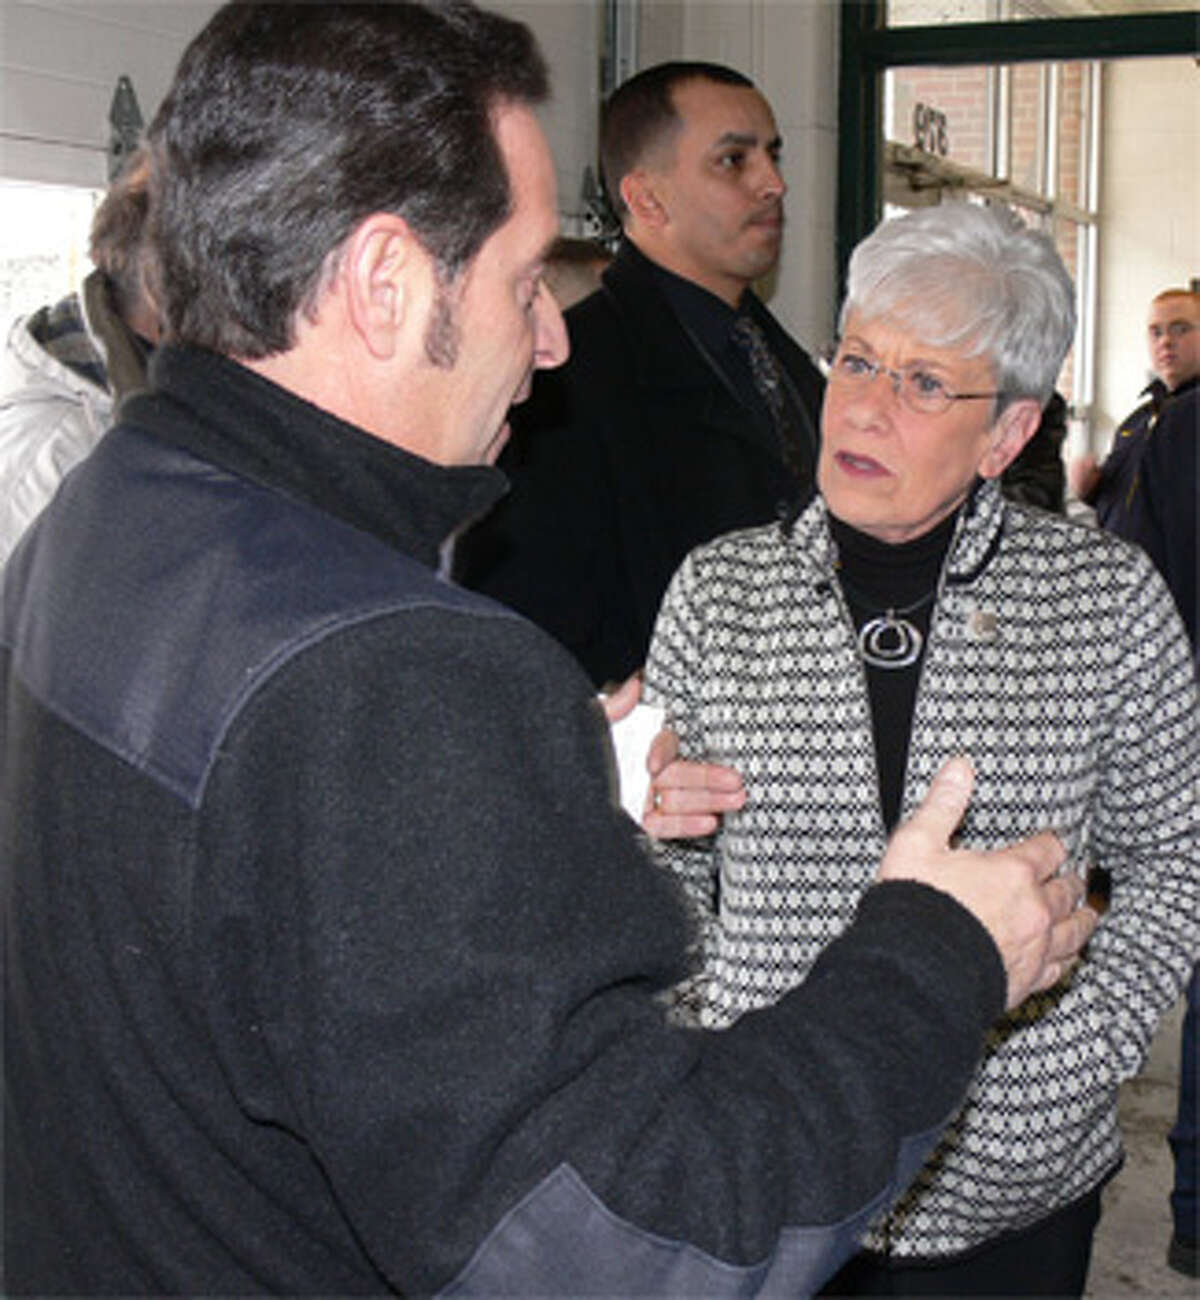 Frank Cirillo, business manager of the International Brotherhood of Electrical Workers Local 420, talks with Lt. Gov. Nancy Wyman during the event at the firehouse.